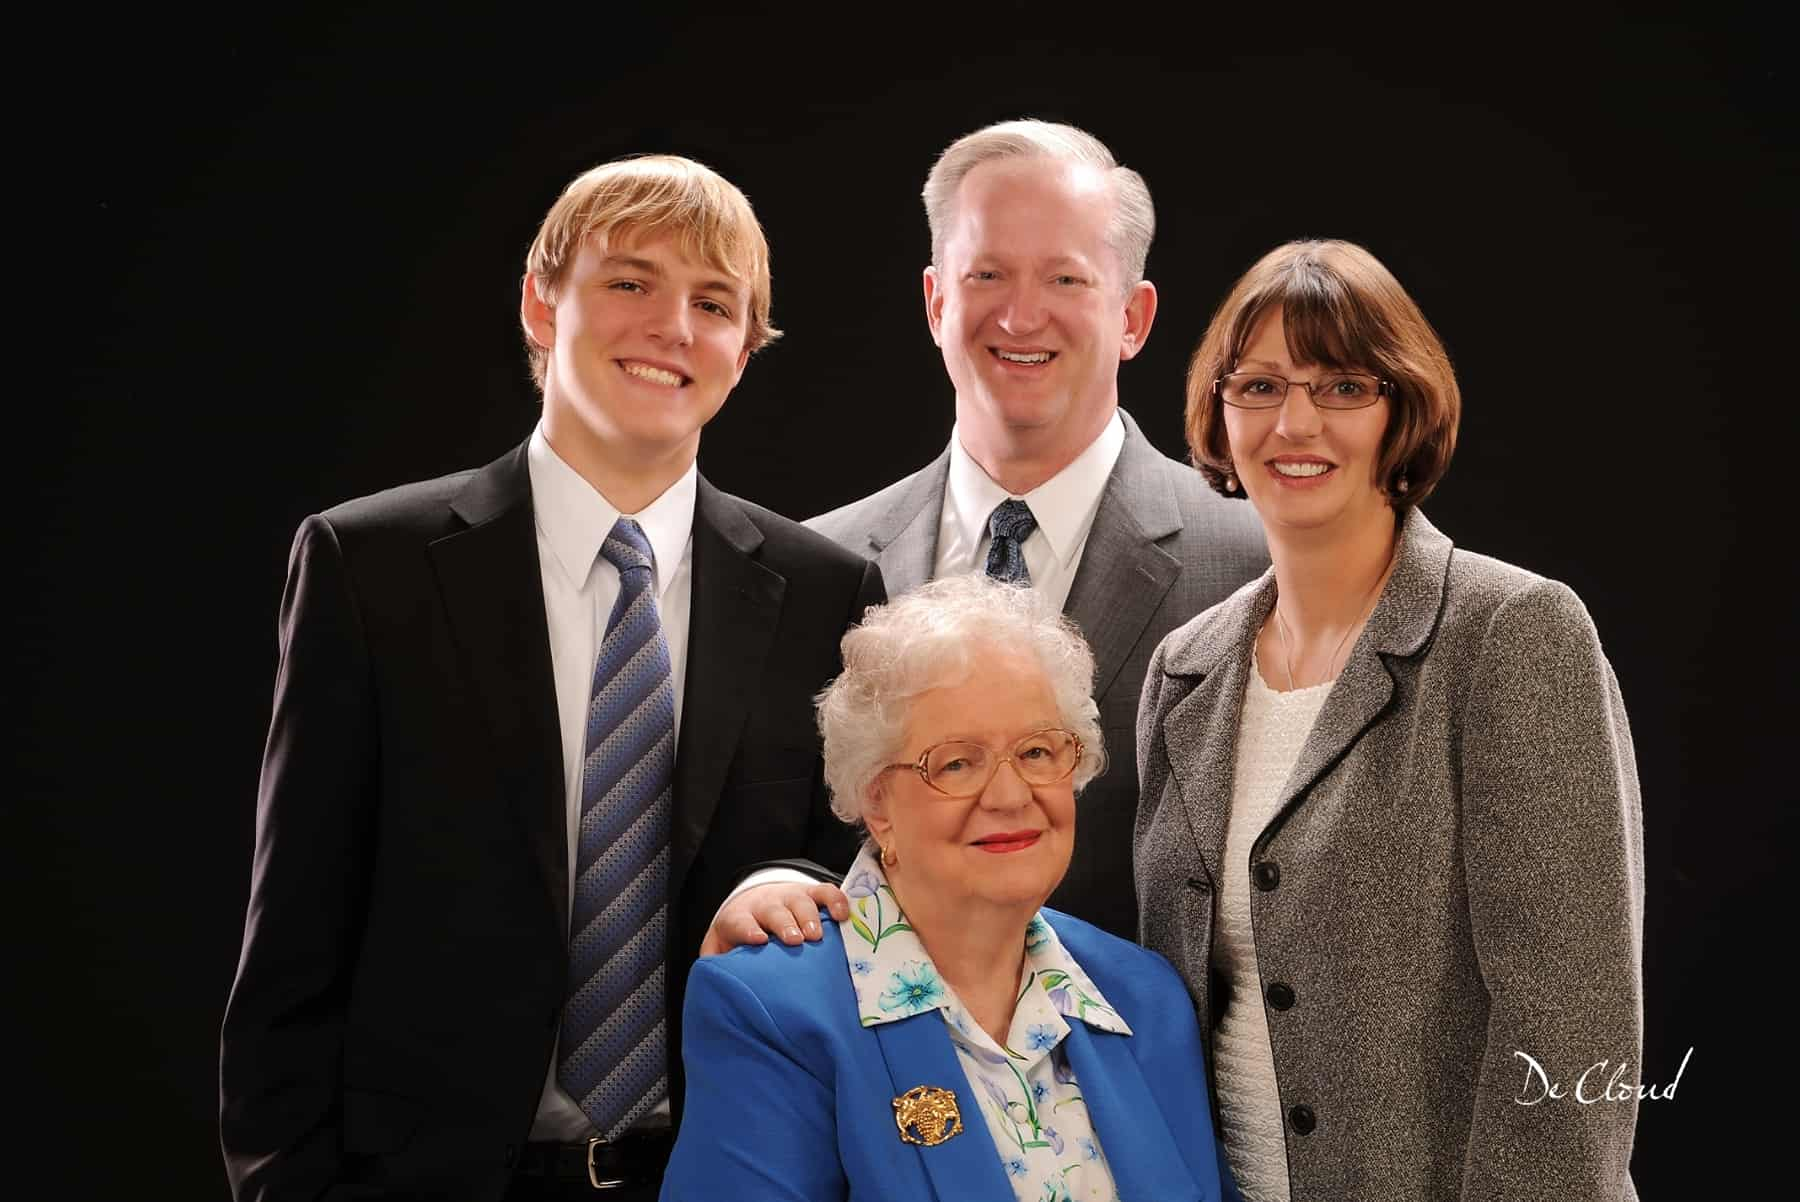 family photo with a father and mother, son, and grandmother